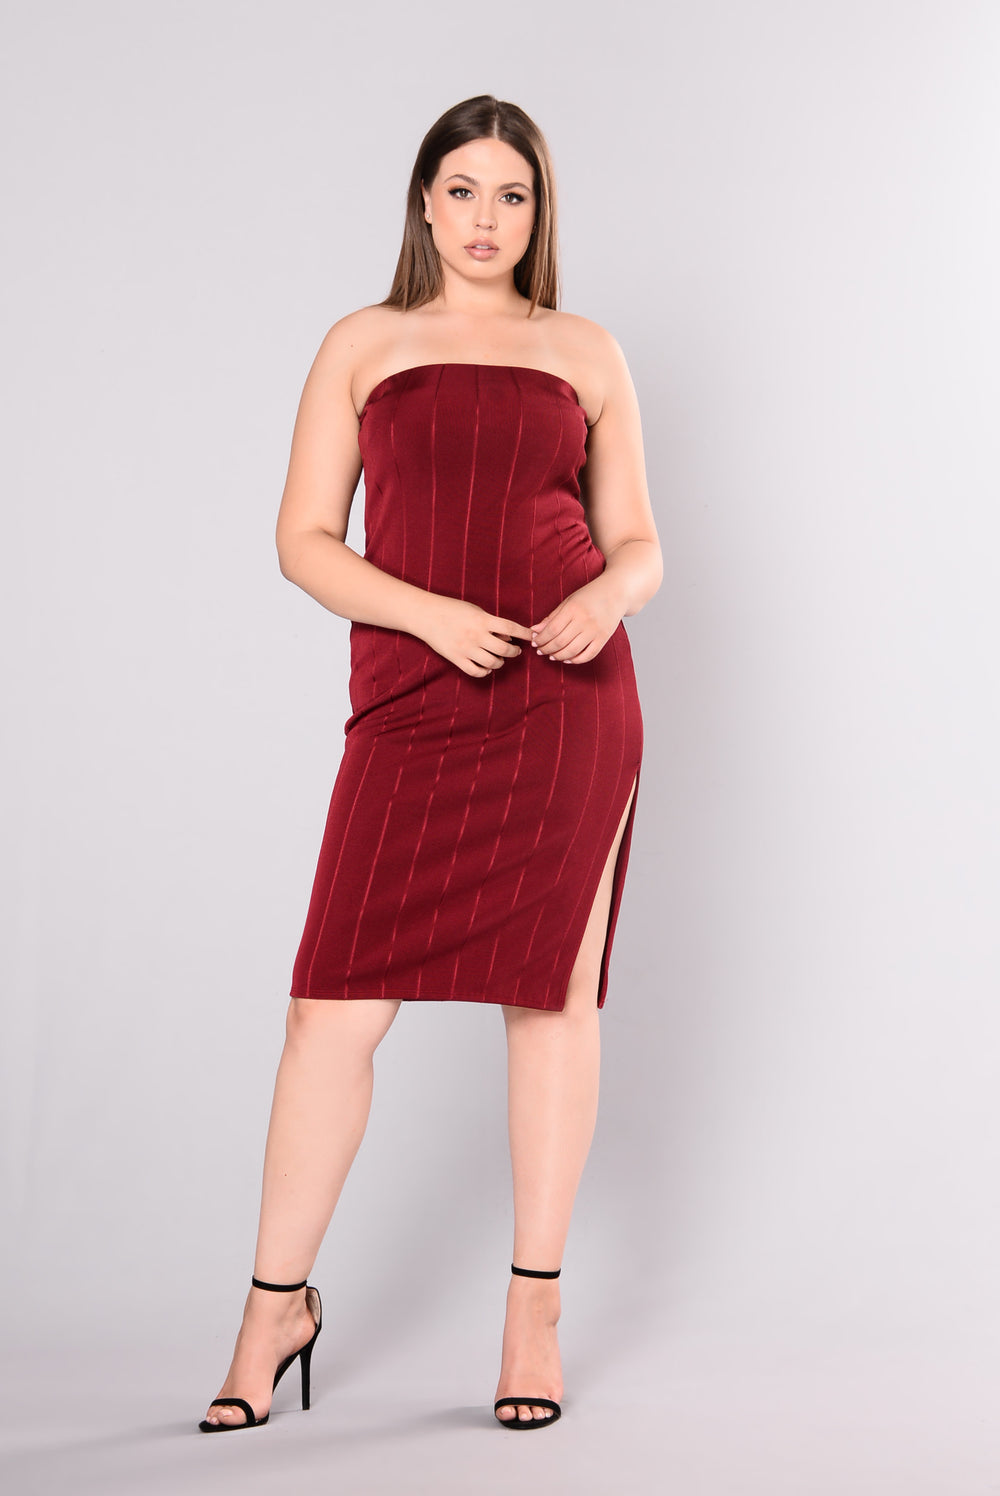 Hold Me Close Dress - Burgundy